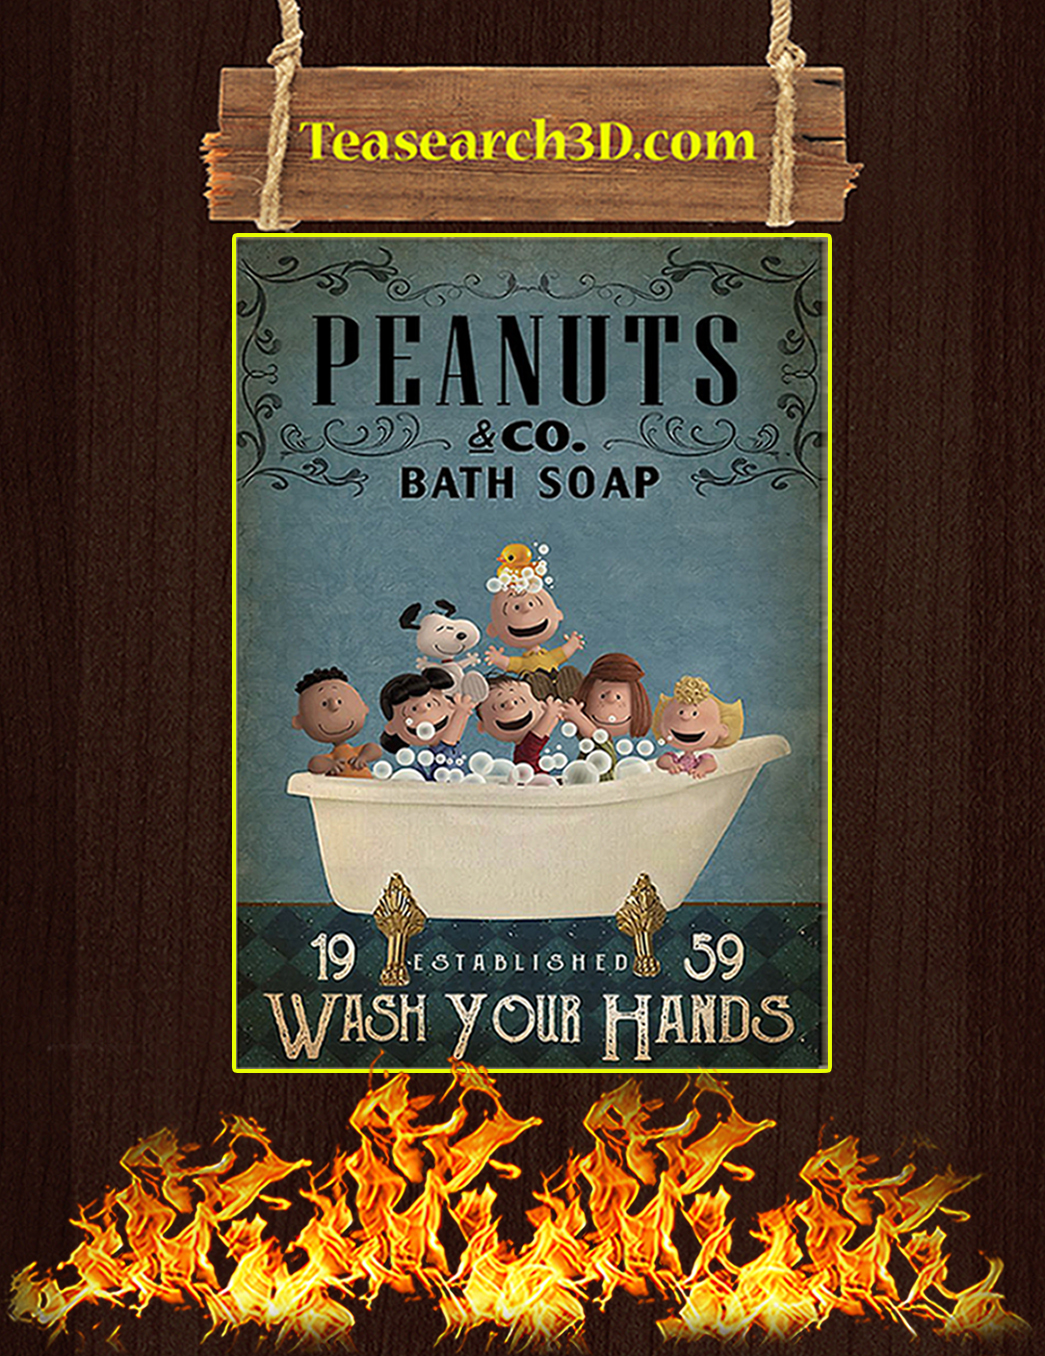 Peanuts co bath soap wash your hands poster A1